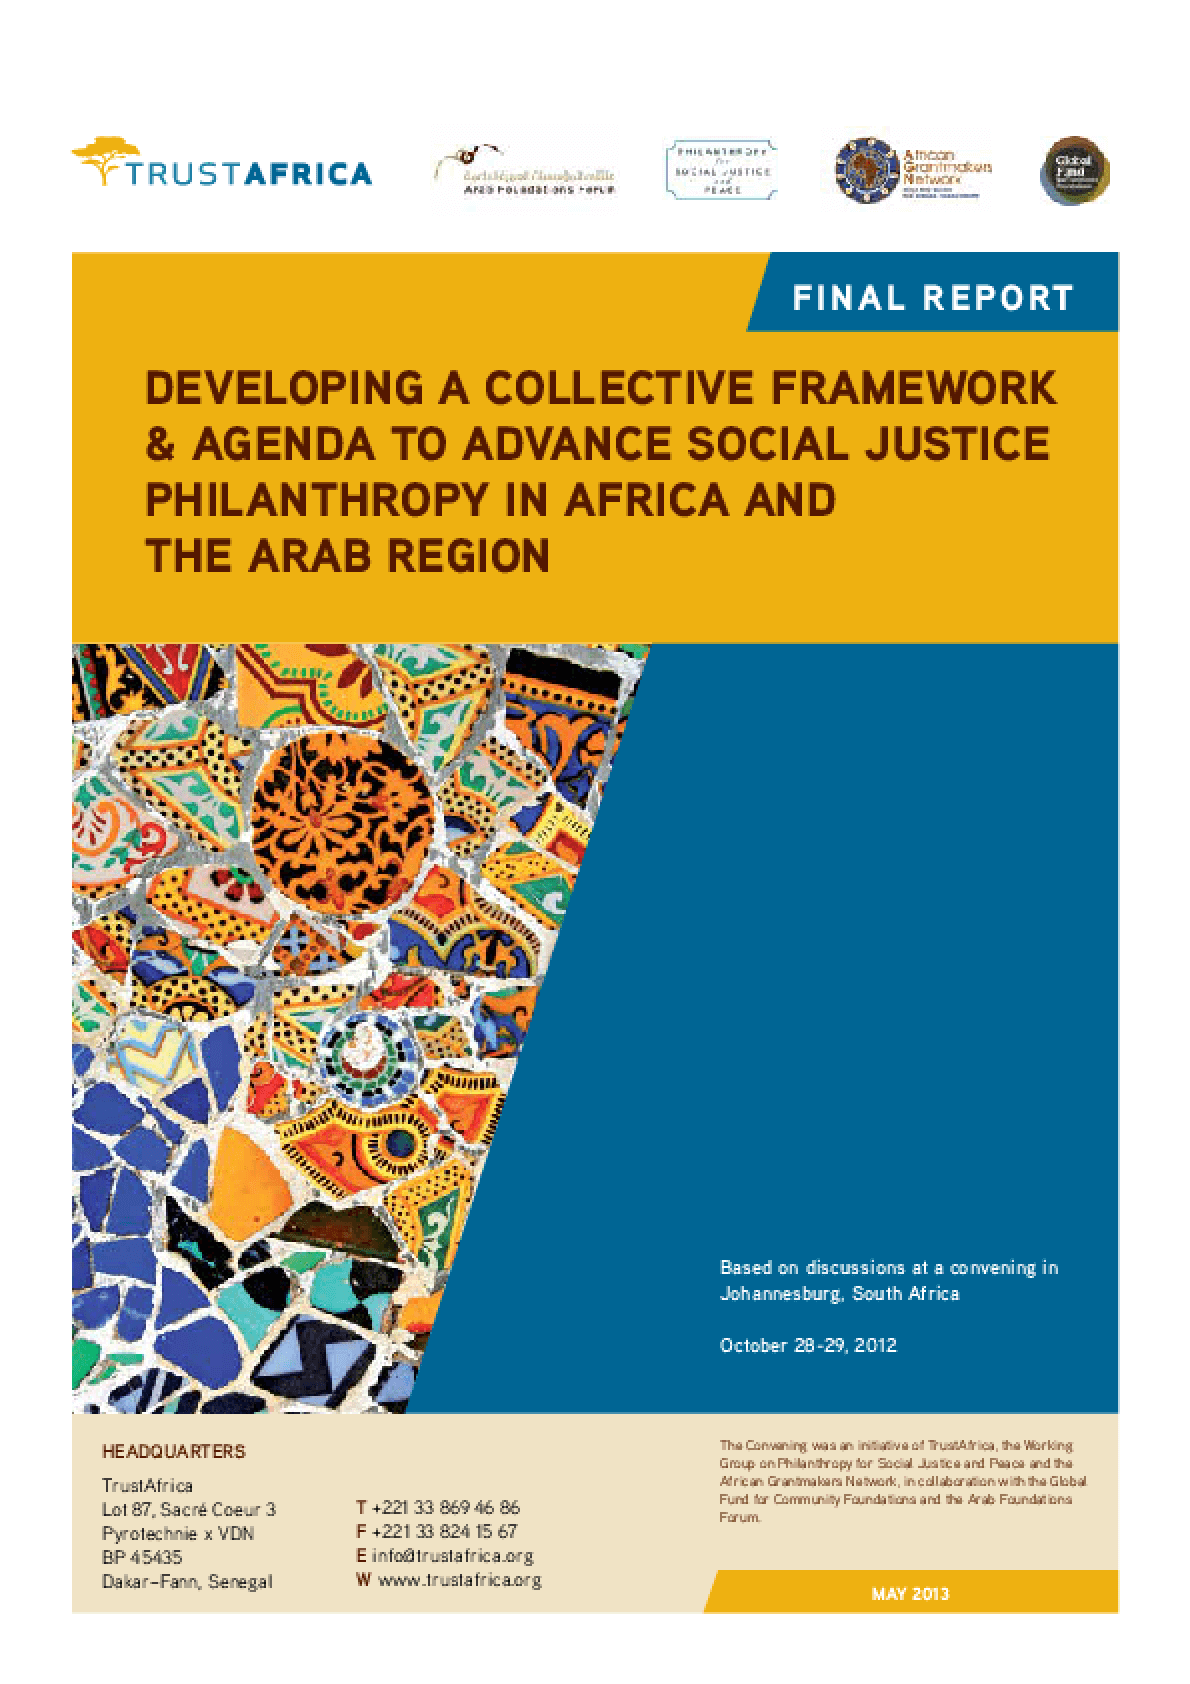 Developing a Collective Framework and Agenda to Advance Social Justice Philanthropy in Africa and the Arab Region